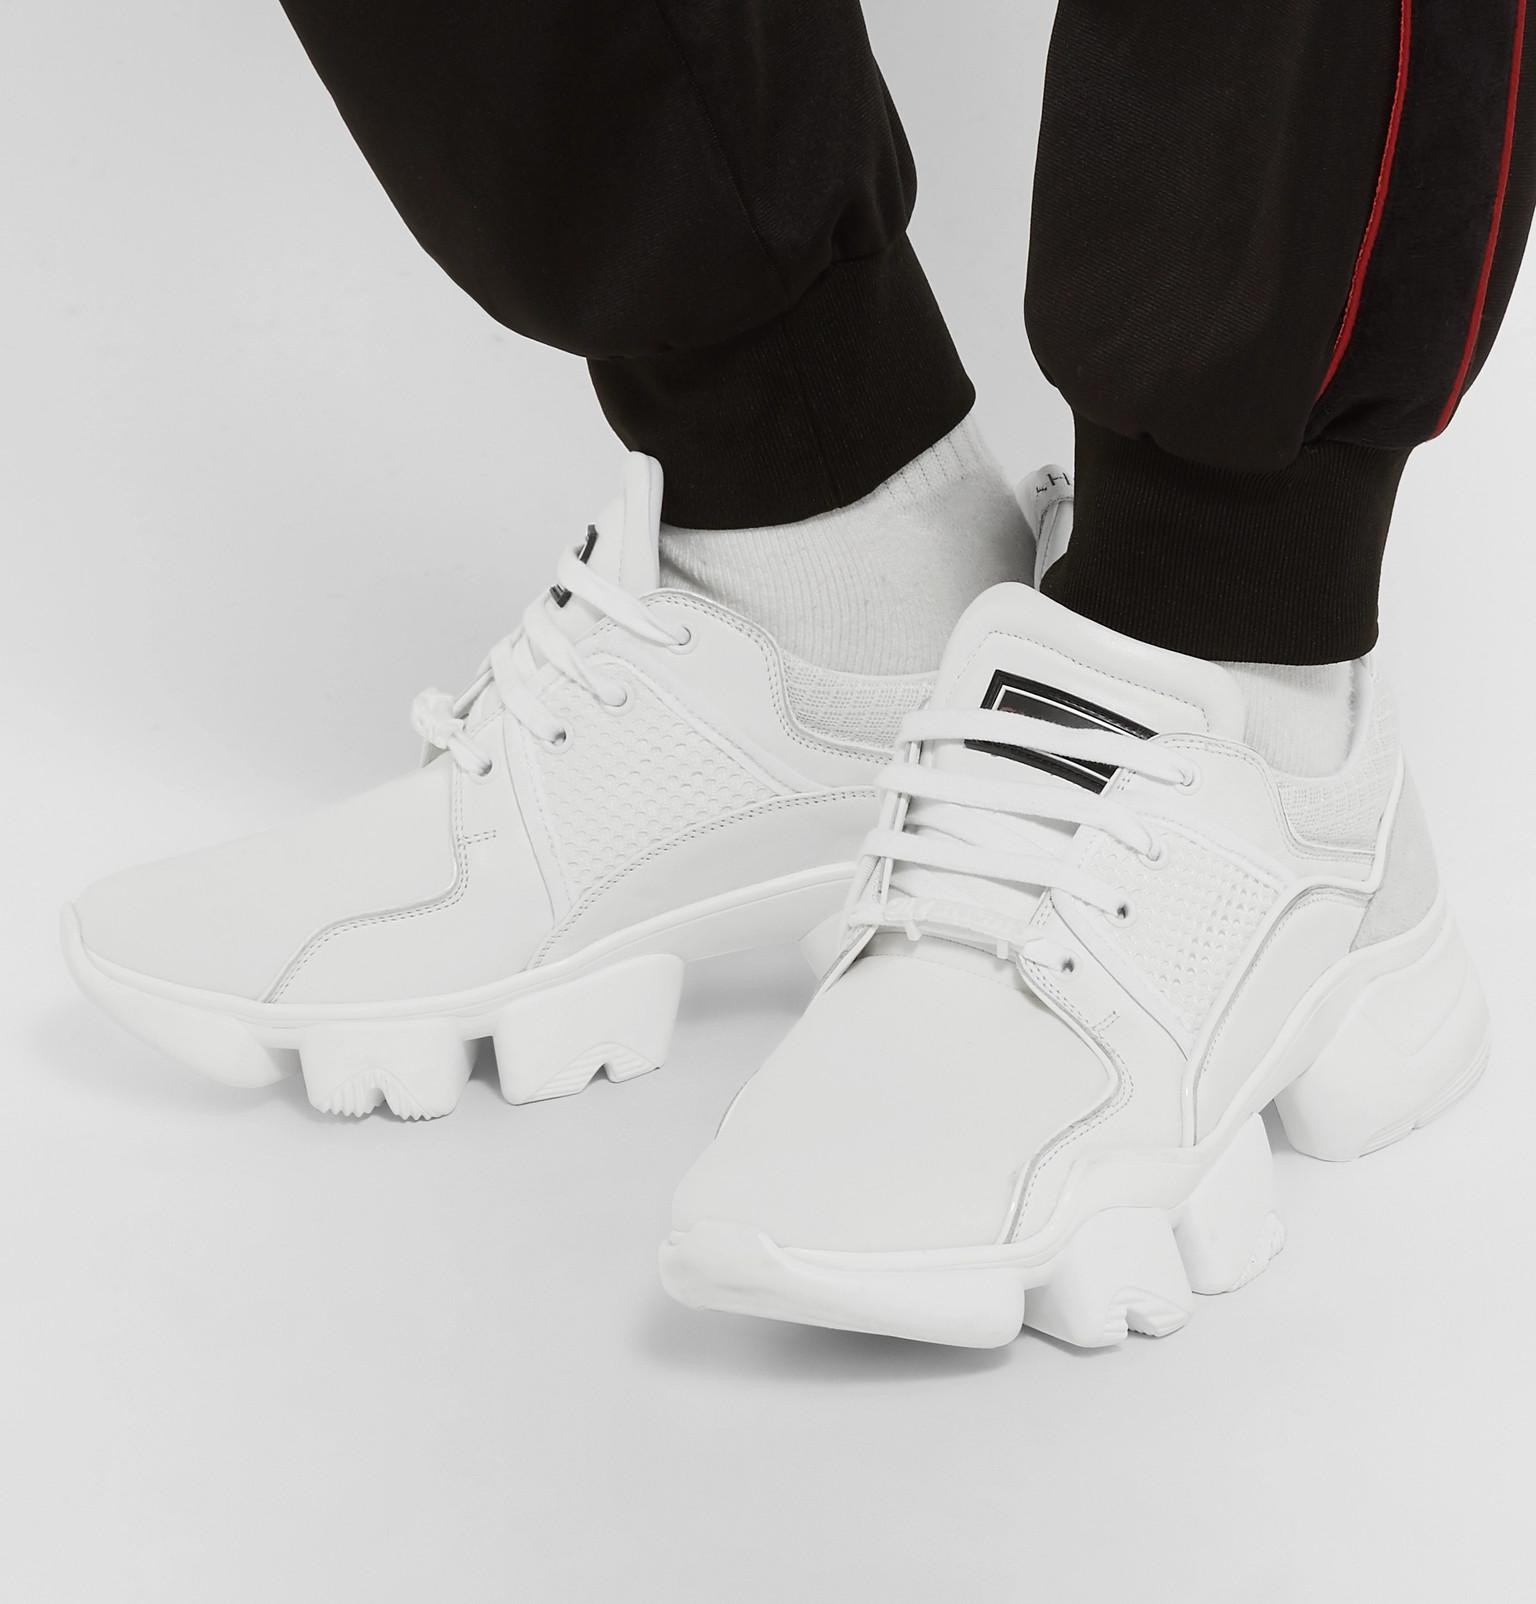 Men's Jaw Trainers NeopreneSuedeLeather And Mesh White oeWdBrCx